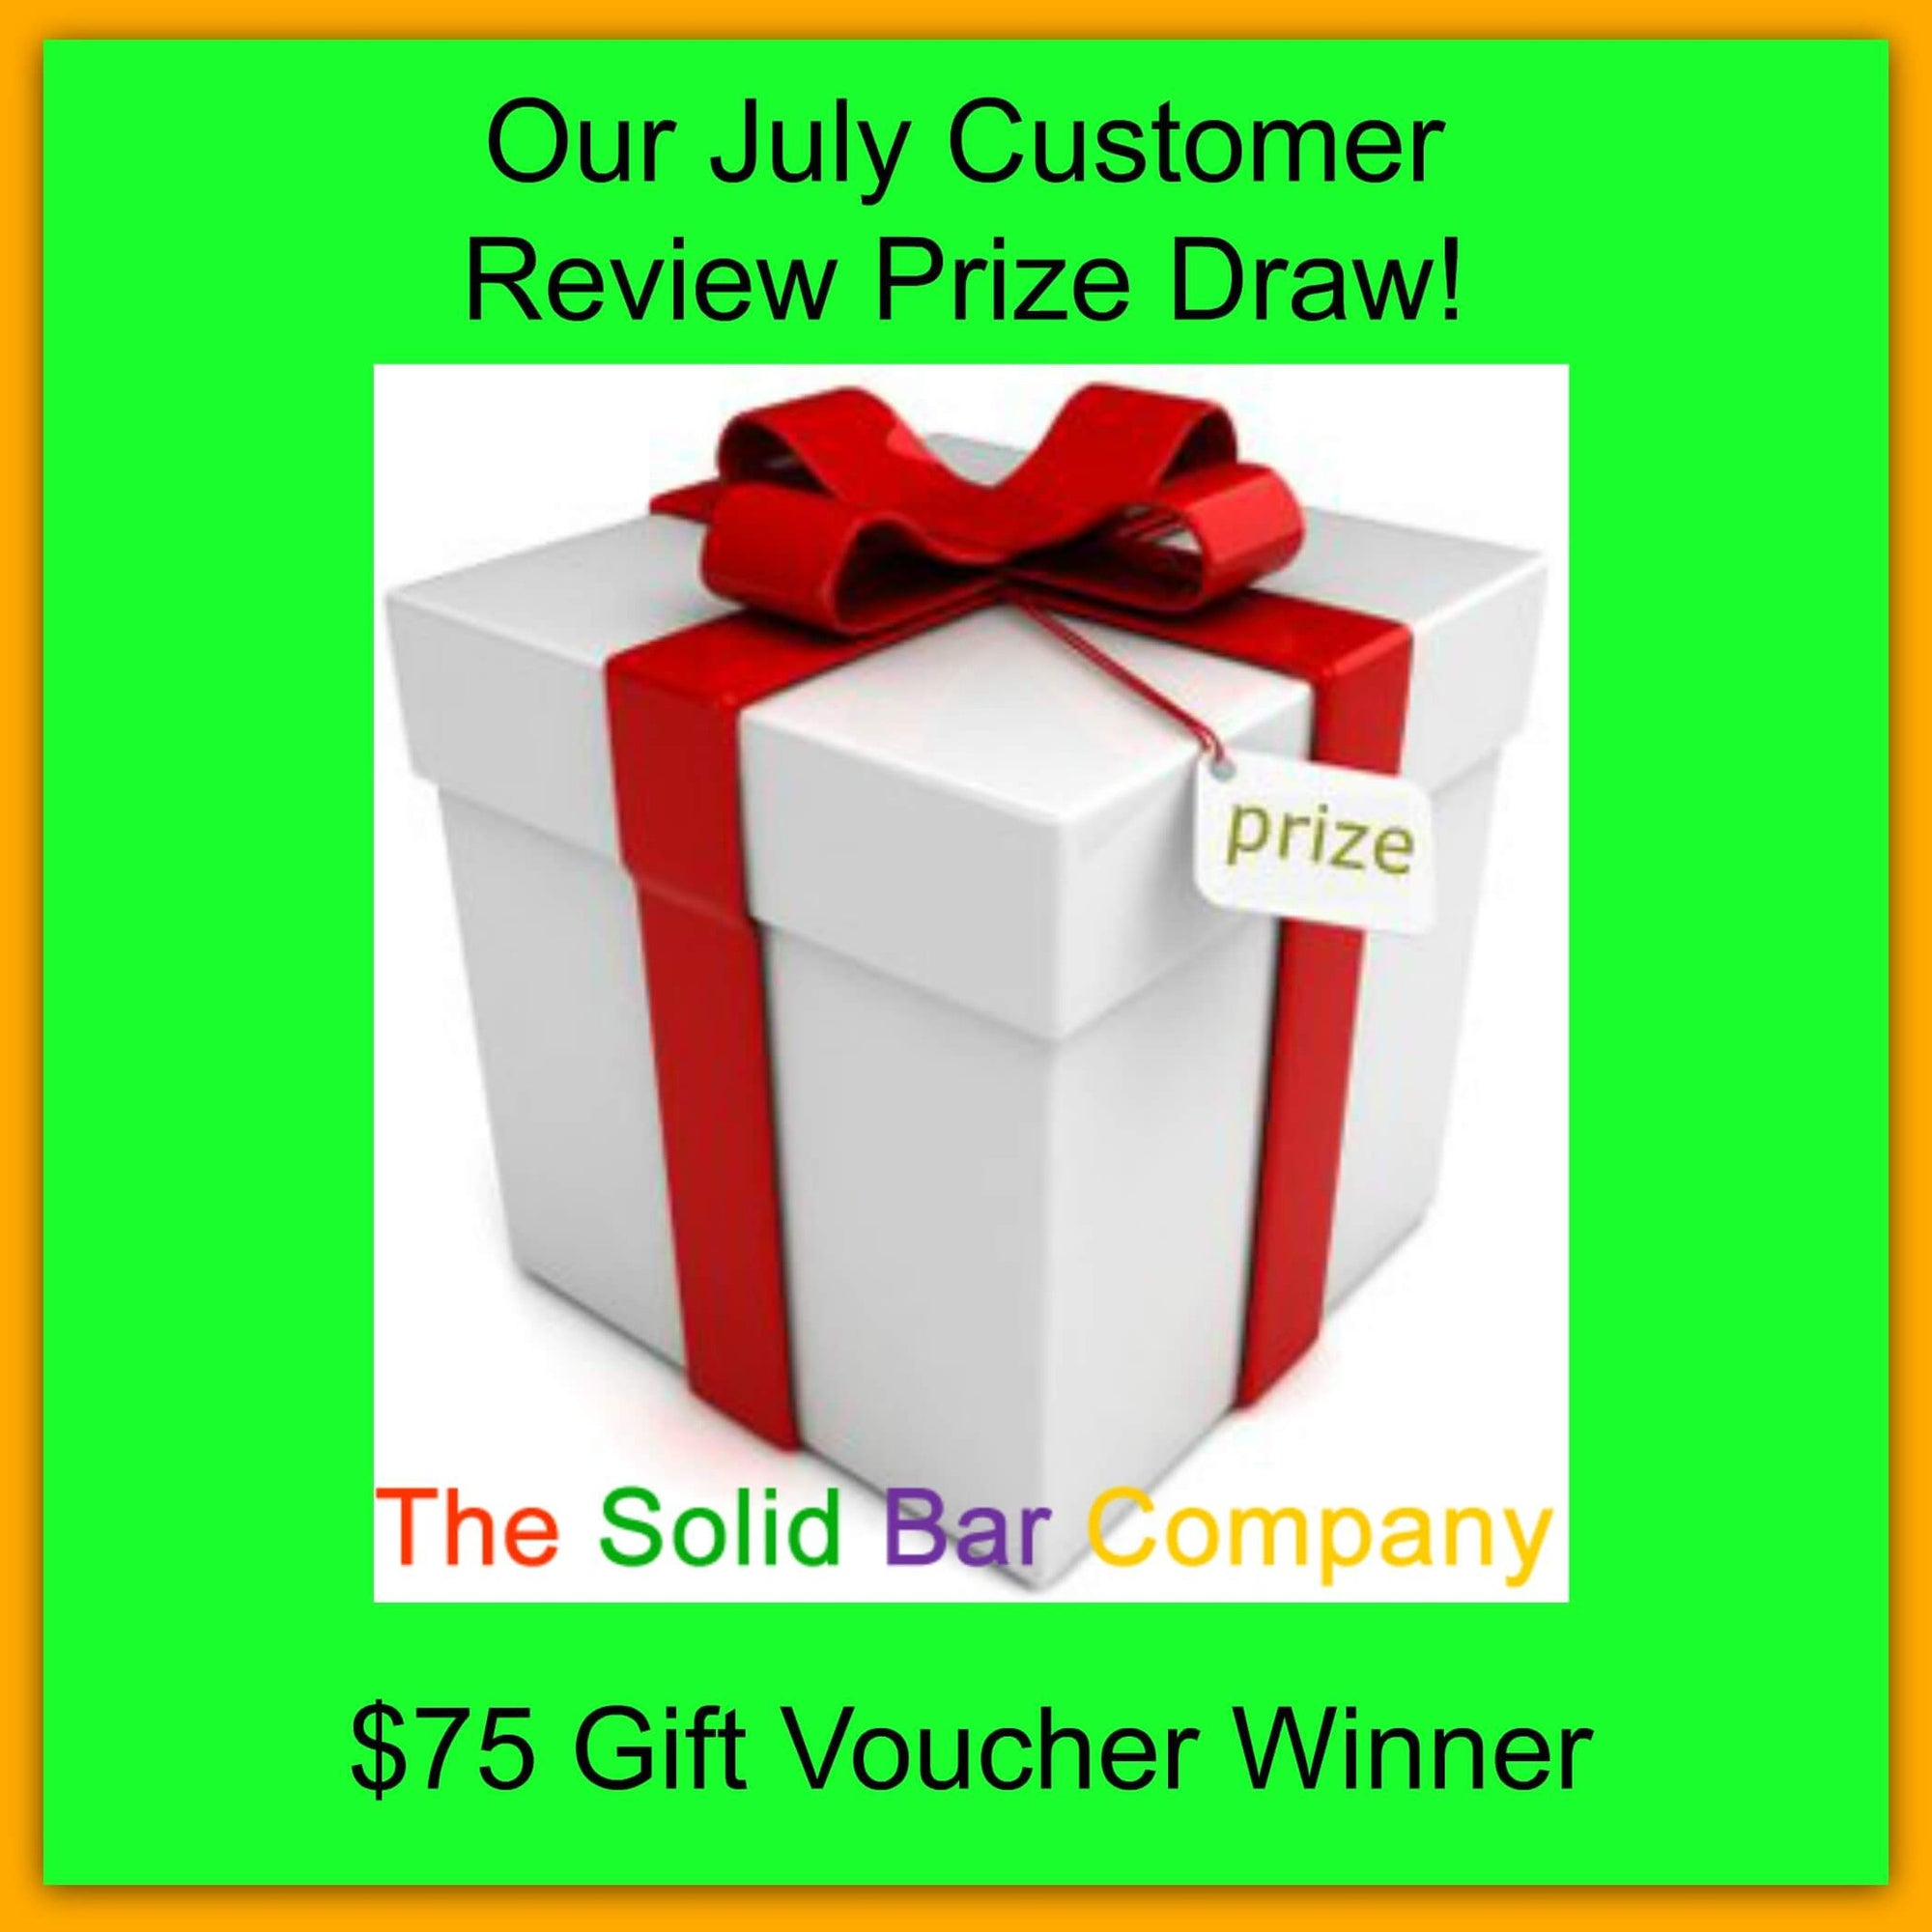 $75 Gift Voucher Winner - Our July Customer Review Prize Draw! 2016